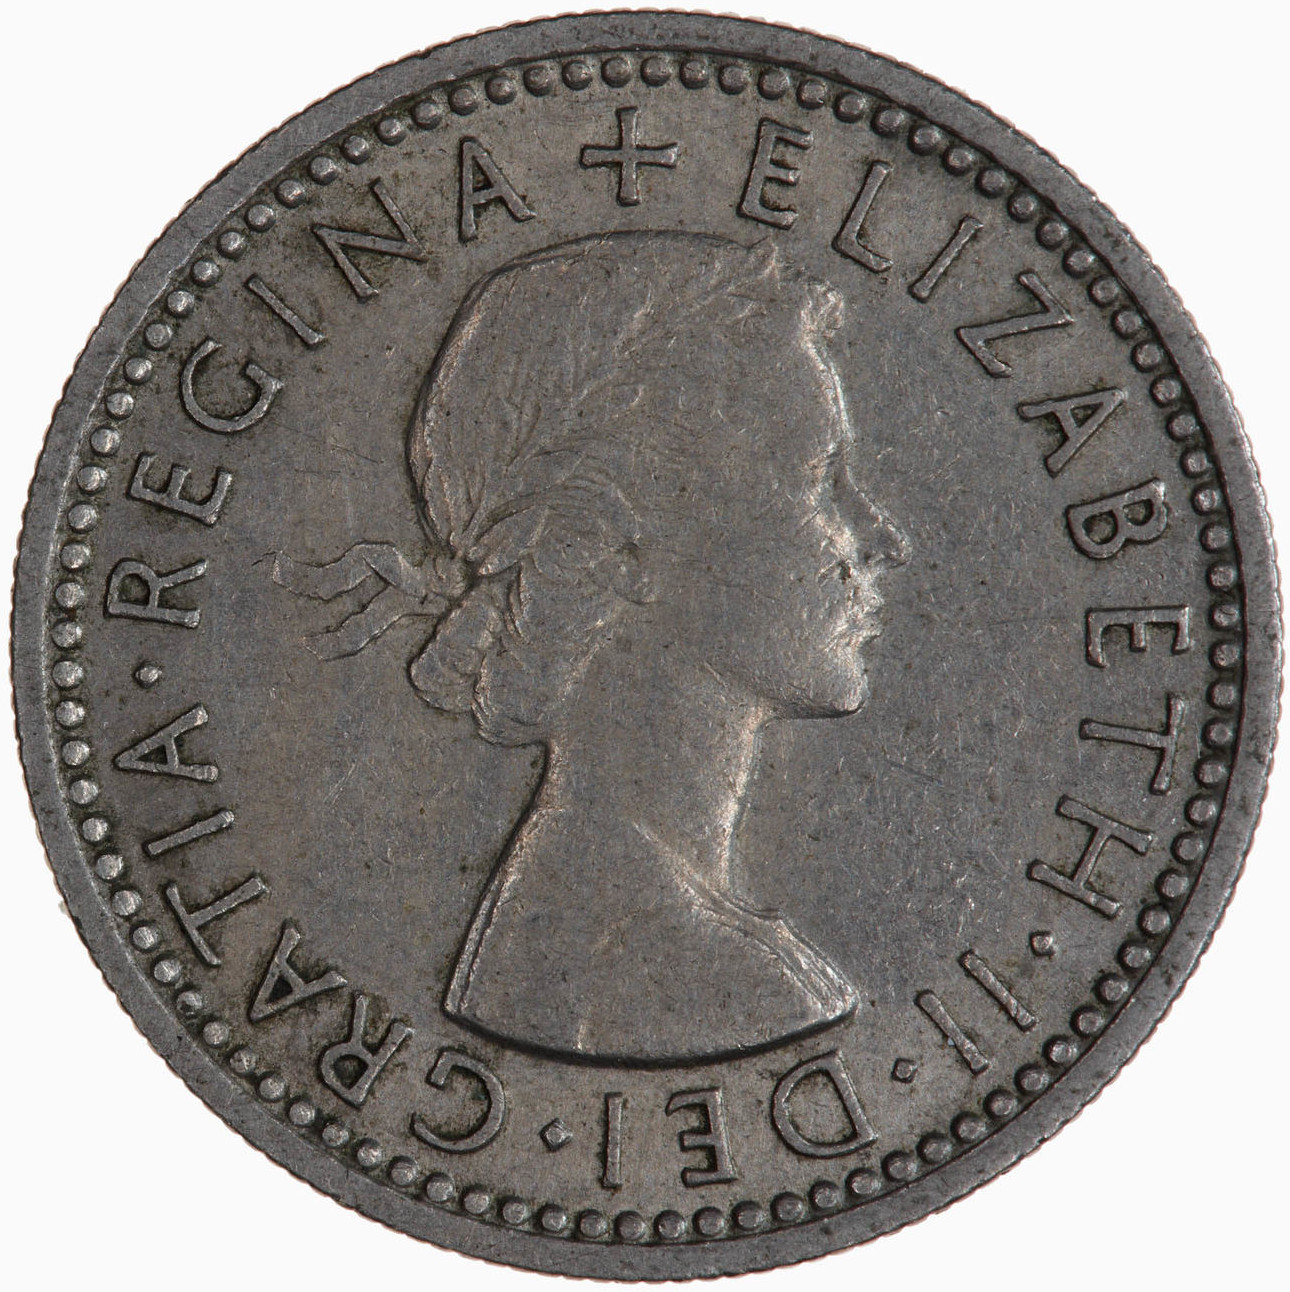 Sixpence 1956: Photo Coin - Sixpence, Elizabeth II, Great Britain, 1956